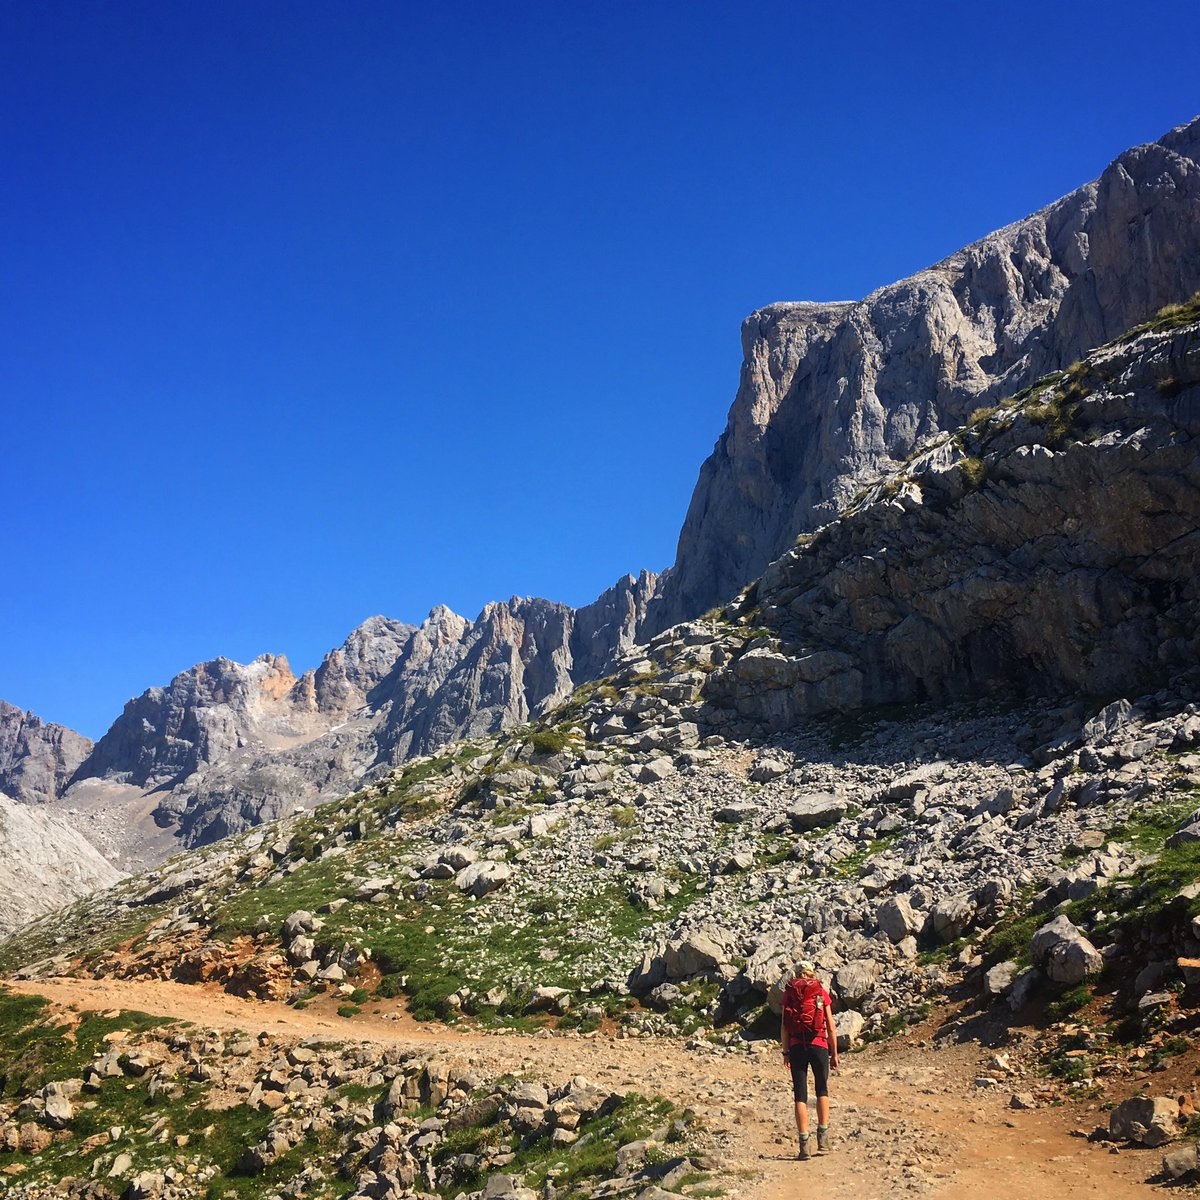 Rocky start to the day on the trail to Torre de los Horcedos Rojos #picosdeeuropa #spain #hiking @Pura_Aventura<br>http://pic.twitter.com/bJGXPYRLWs